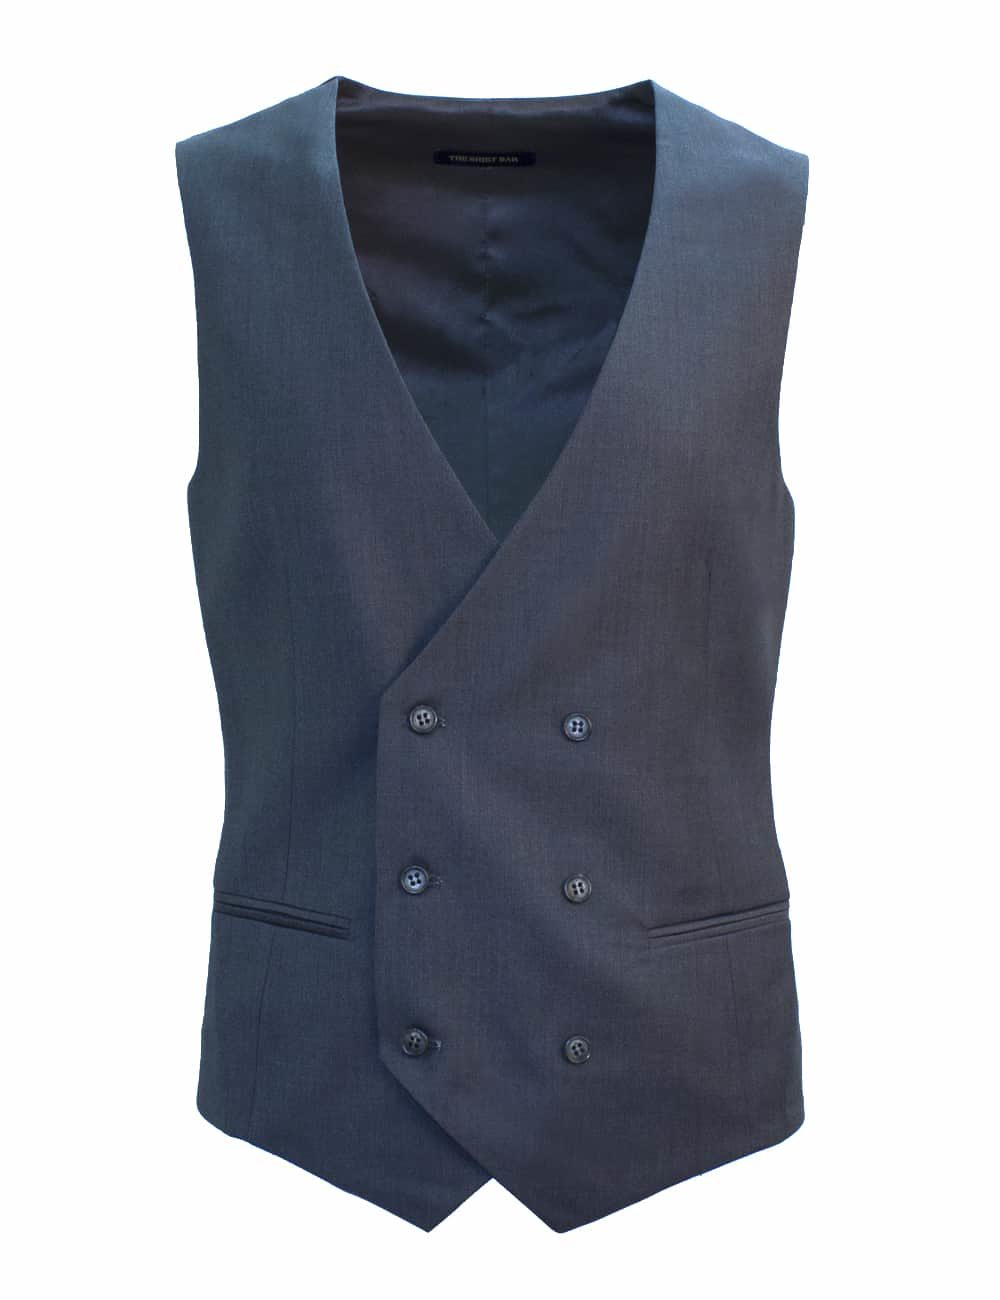 Tailored Fit Grey Double Breasted Vest V2V1.1